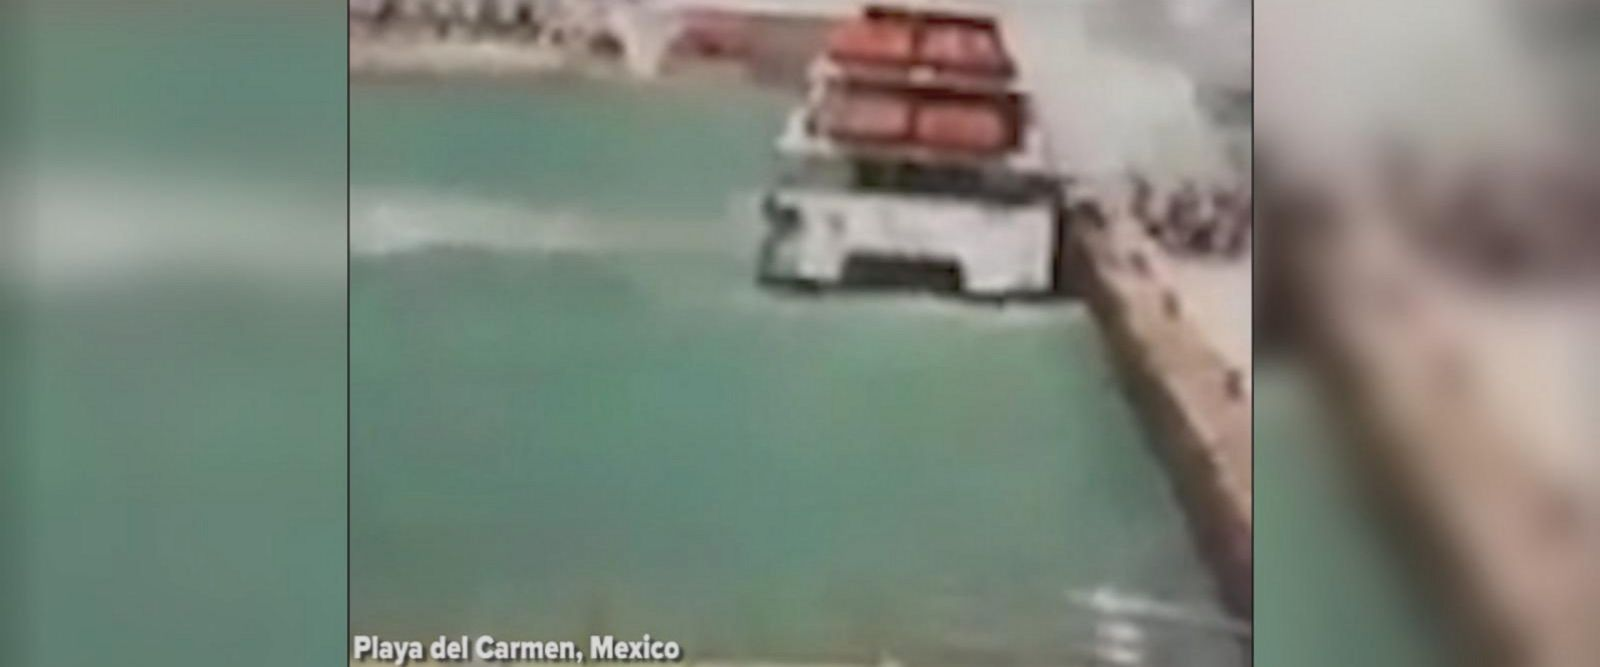 An explosion on a ferry in Mexico has left a number of people injured, according to local officials in the Mexican state of Quintana Roo.